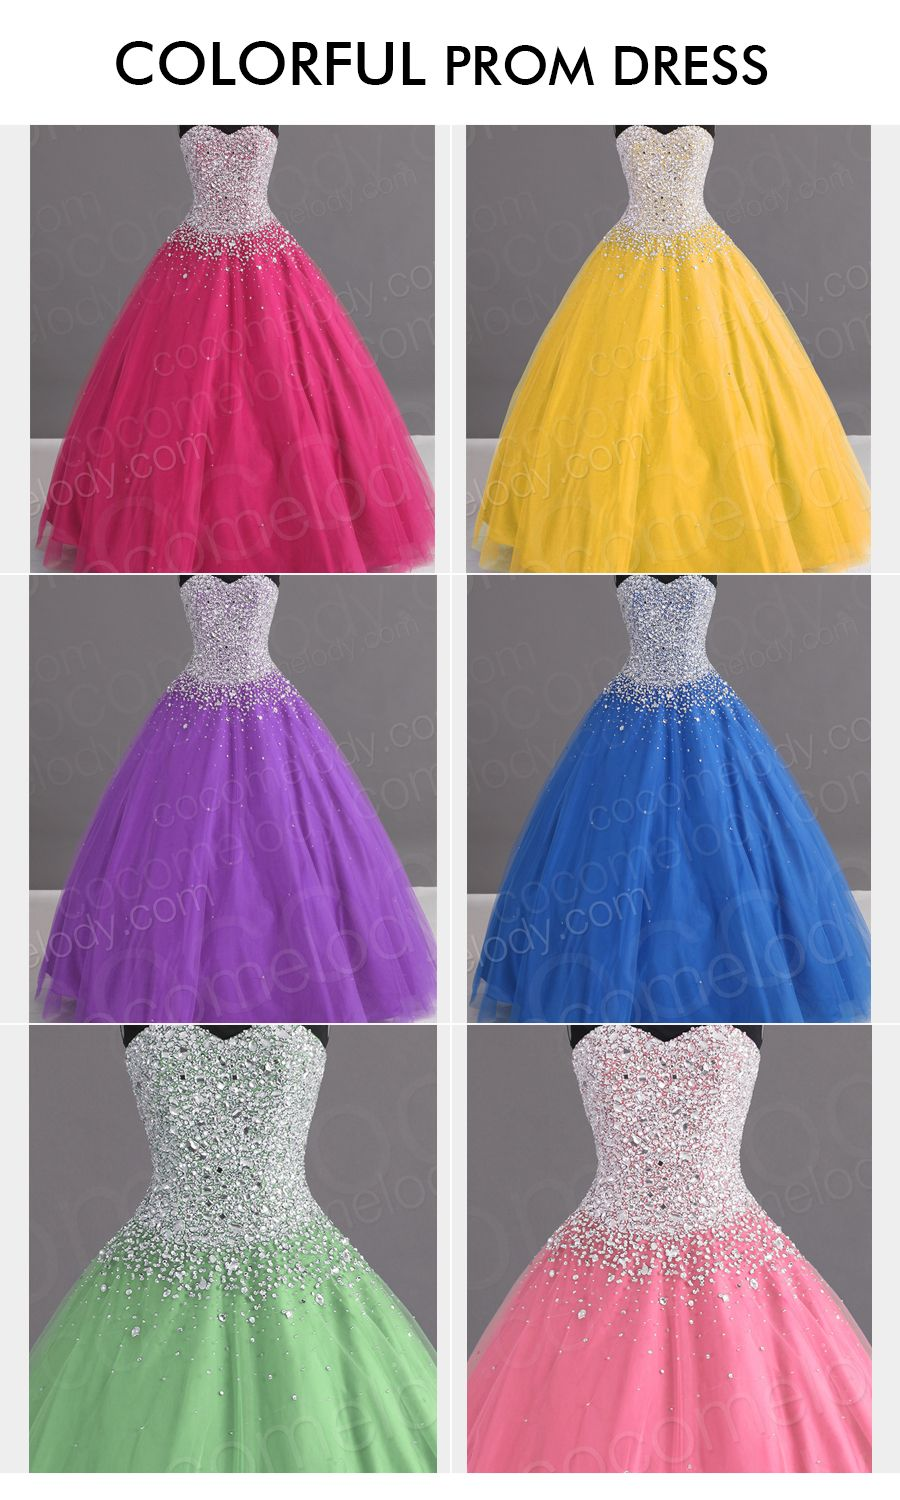 Amazing party dress many colors available click to see more colors